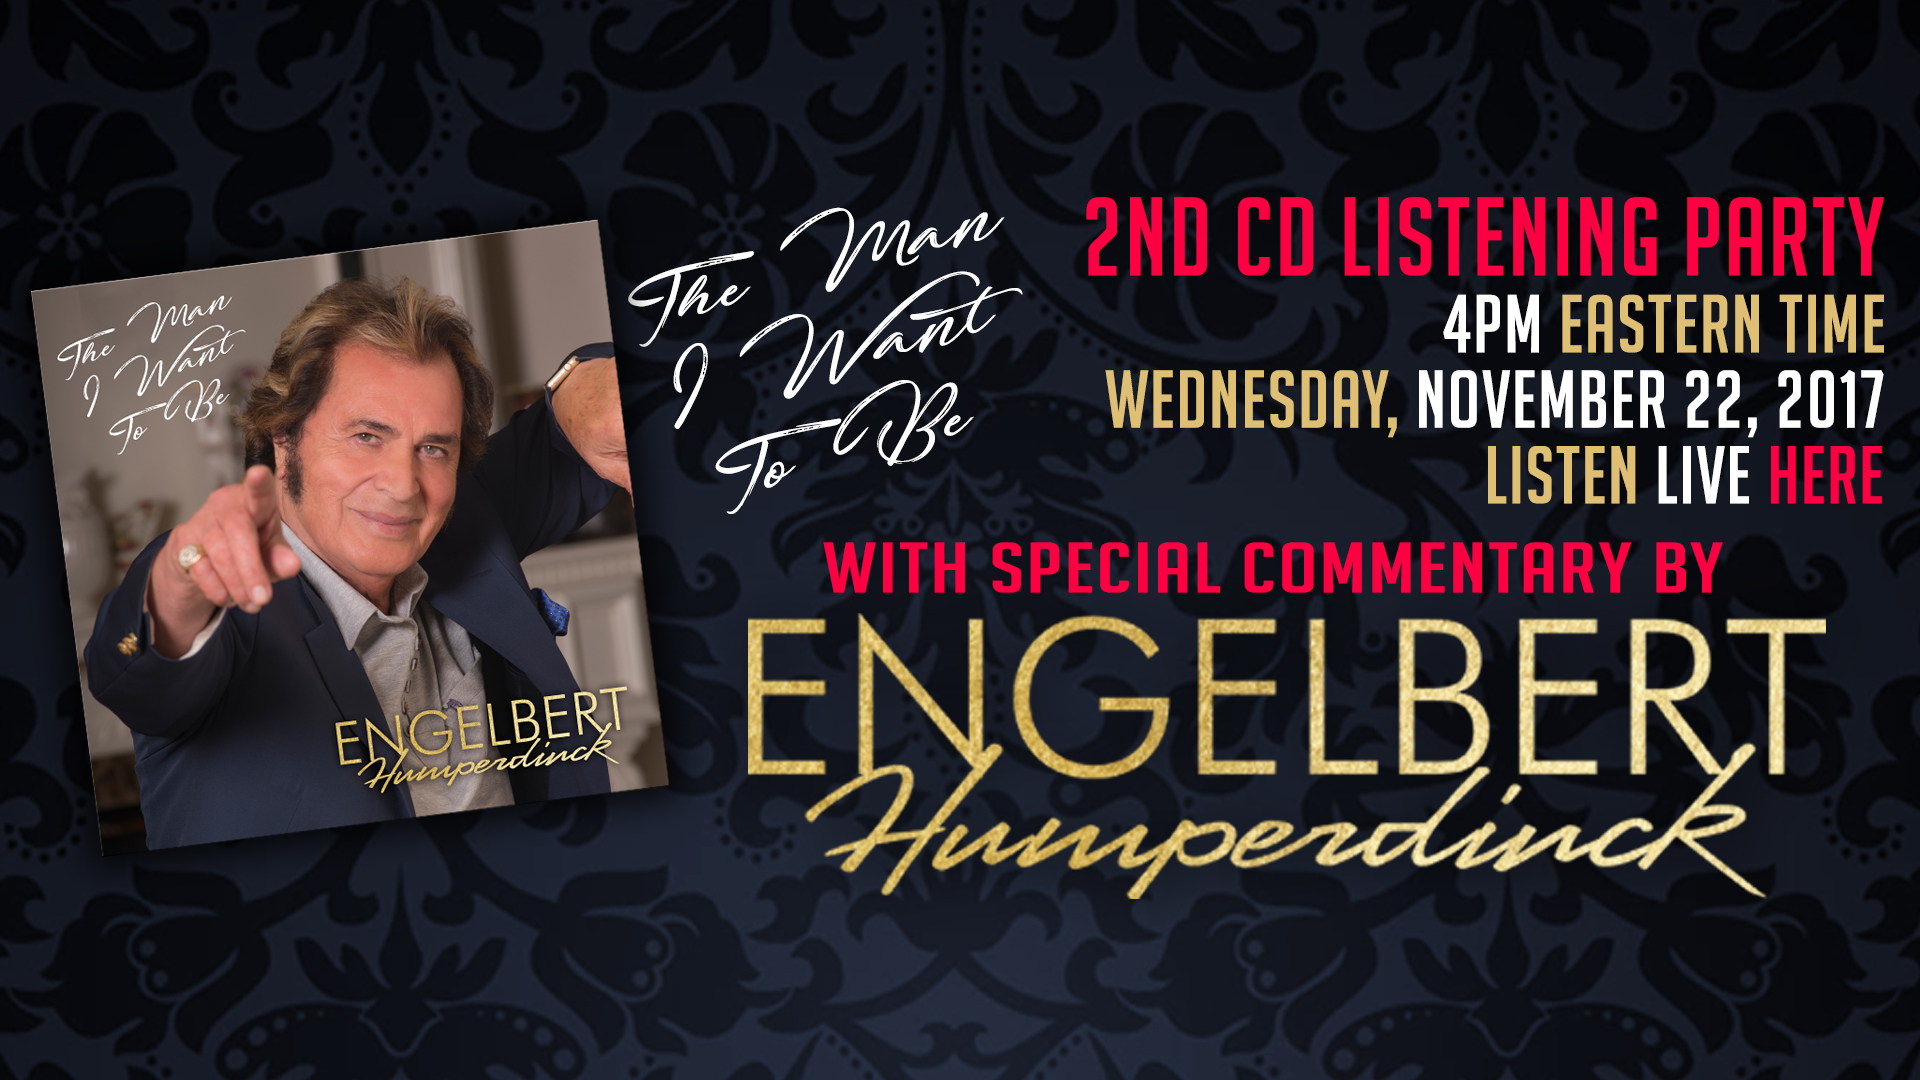 Engelbert Humperdinck To Share Song Commentary at Upcoming Listening Party!